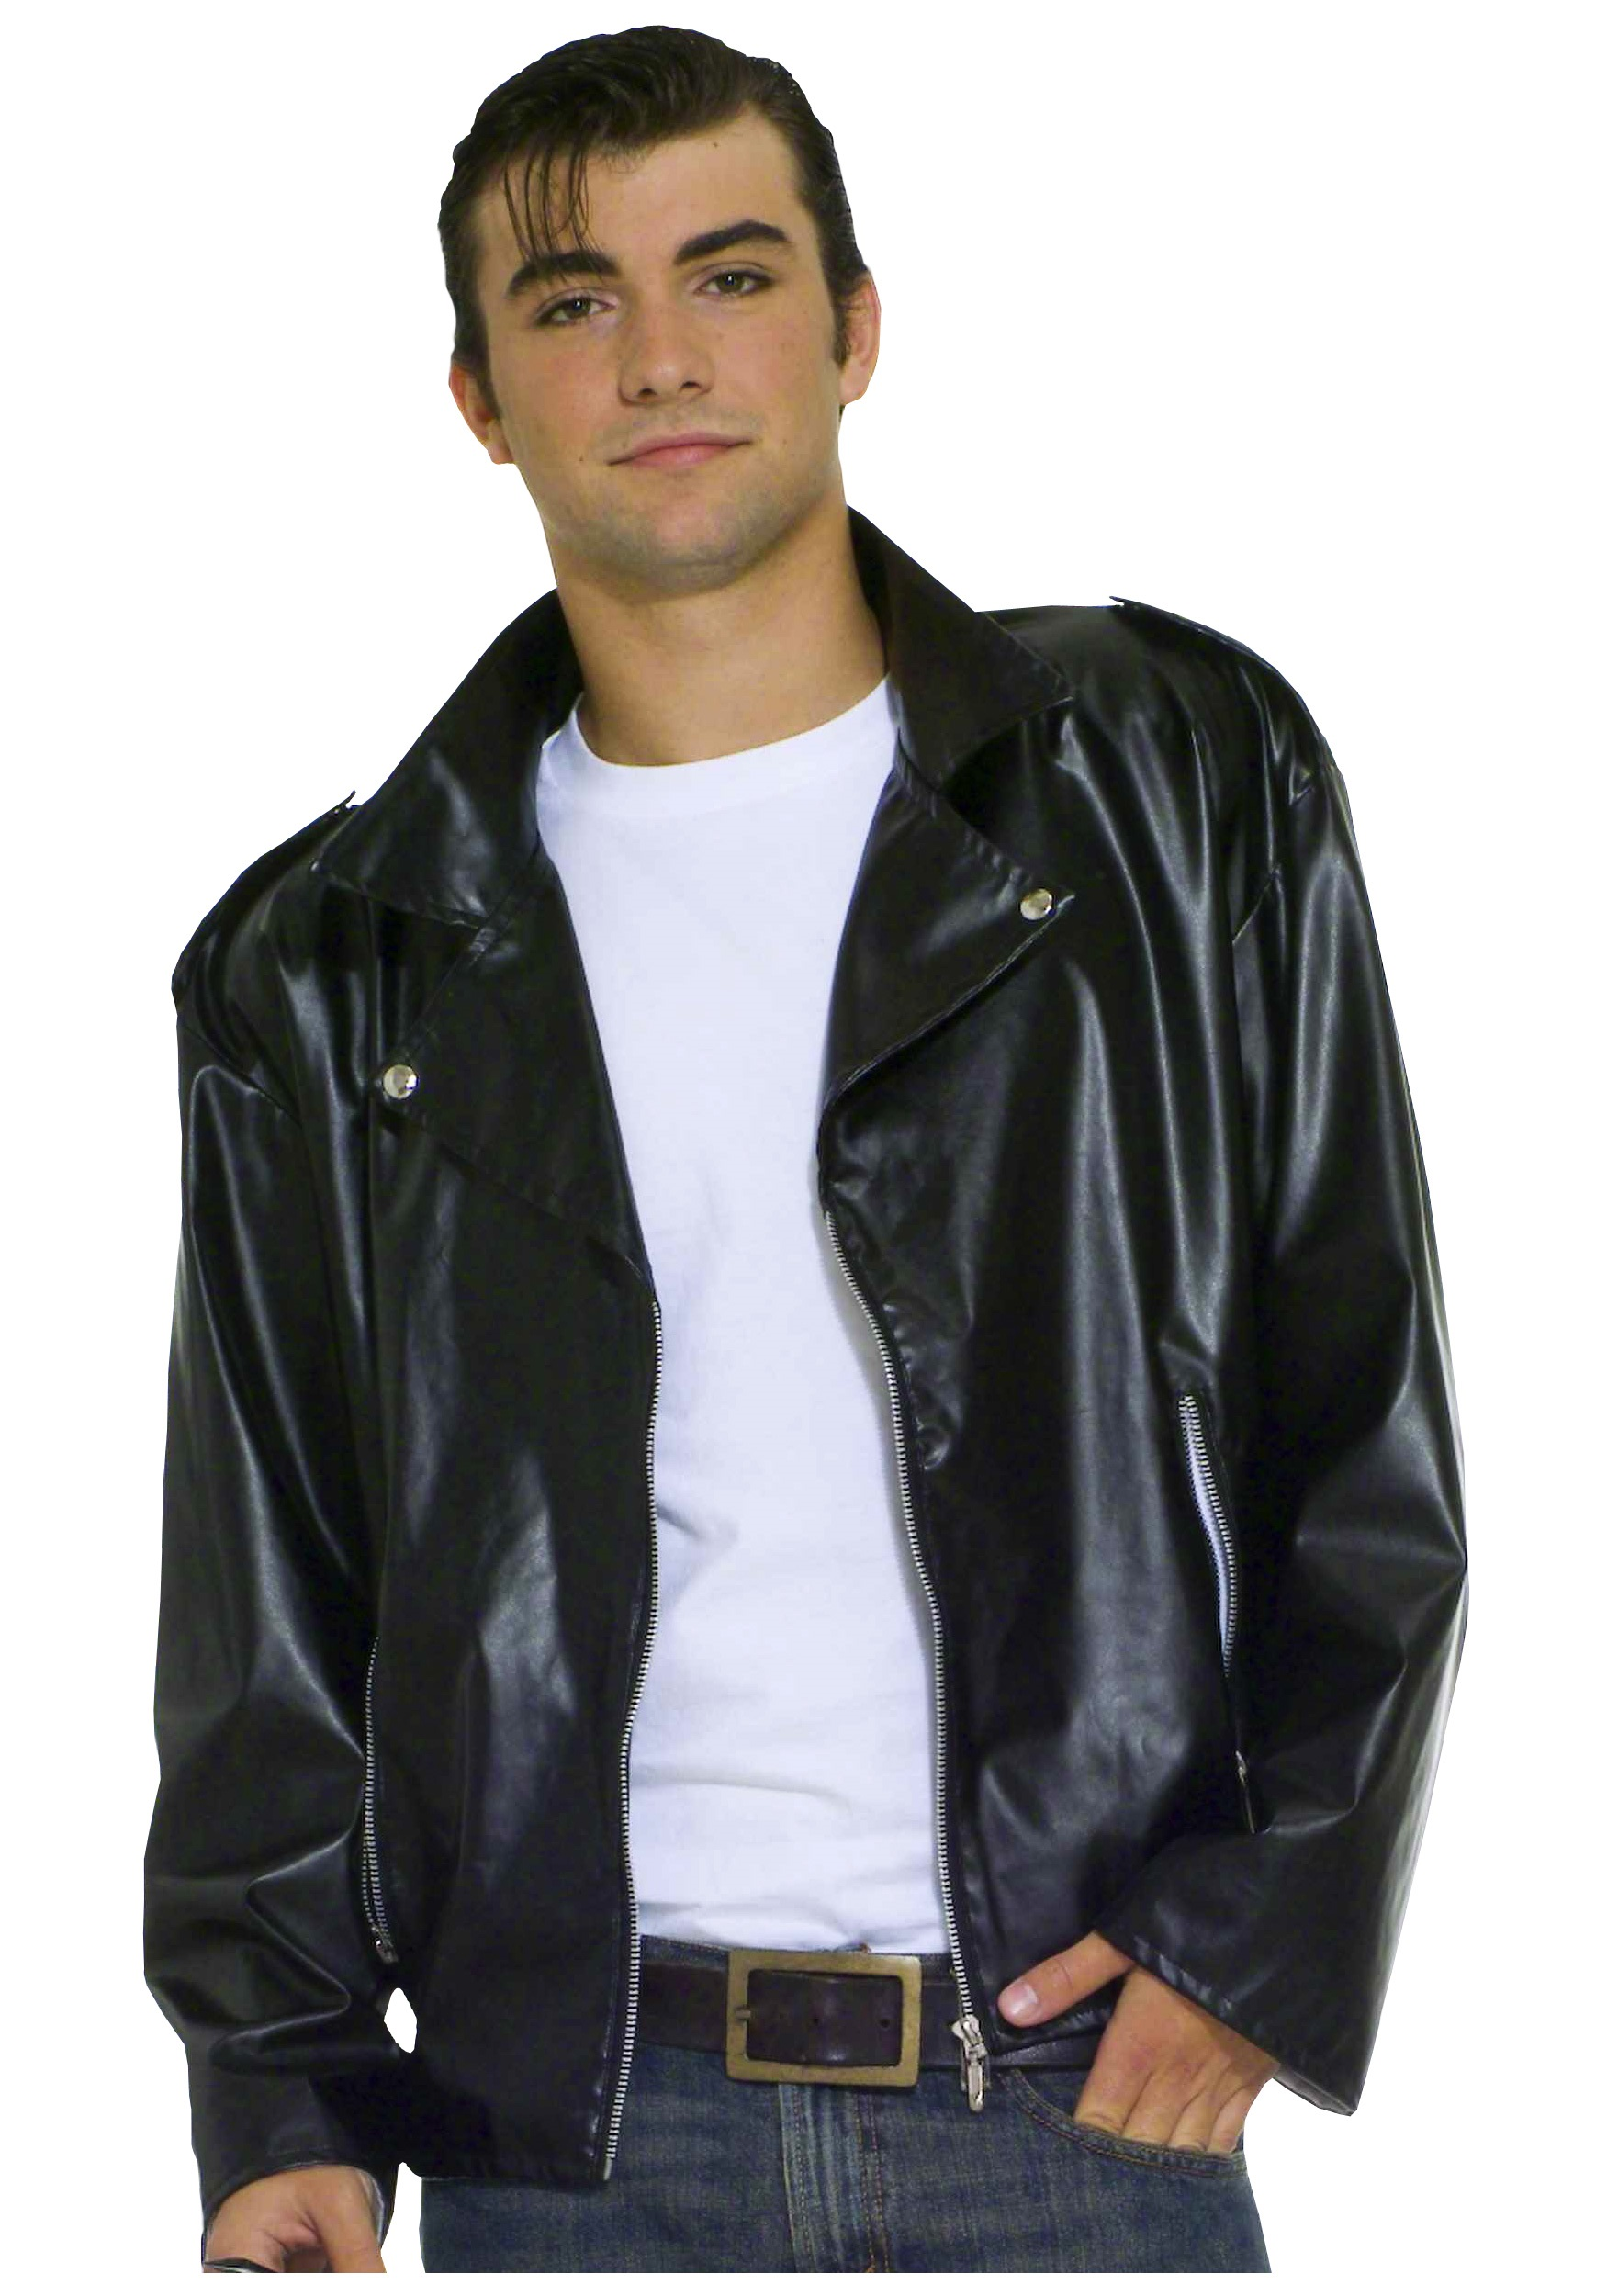 dea788e66 Plus Size 50s Greaser Jacket Sc 1 St Halloween Costume Ideas. image number  29 of grease costumes movie ...